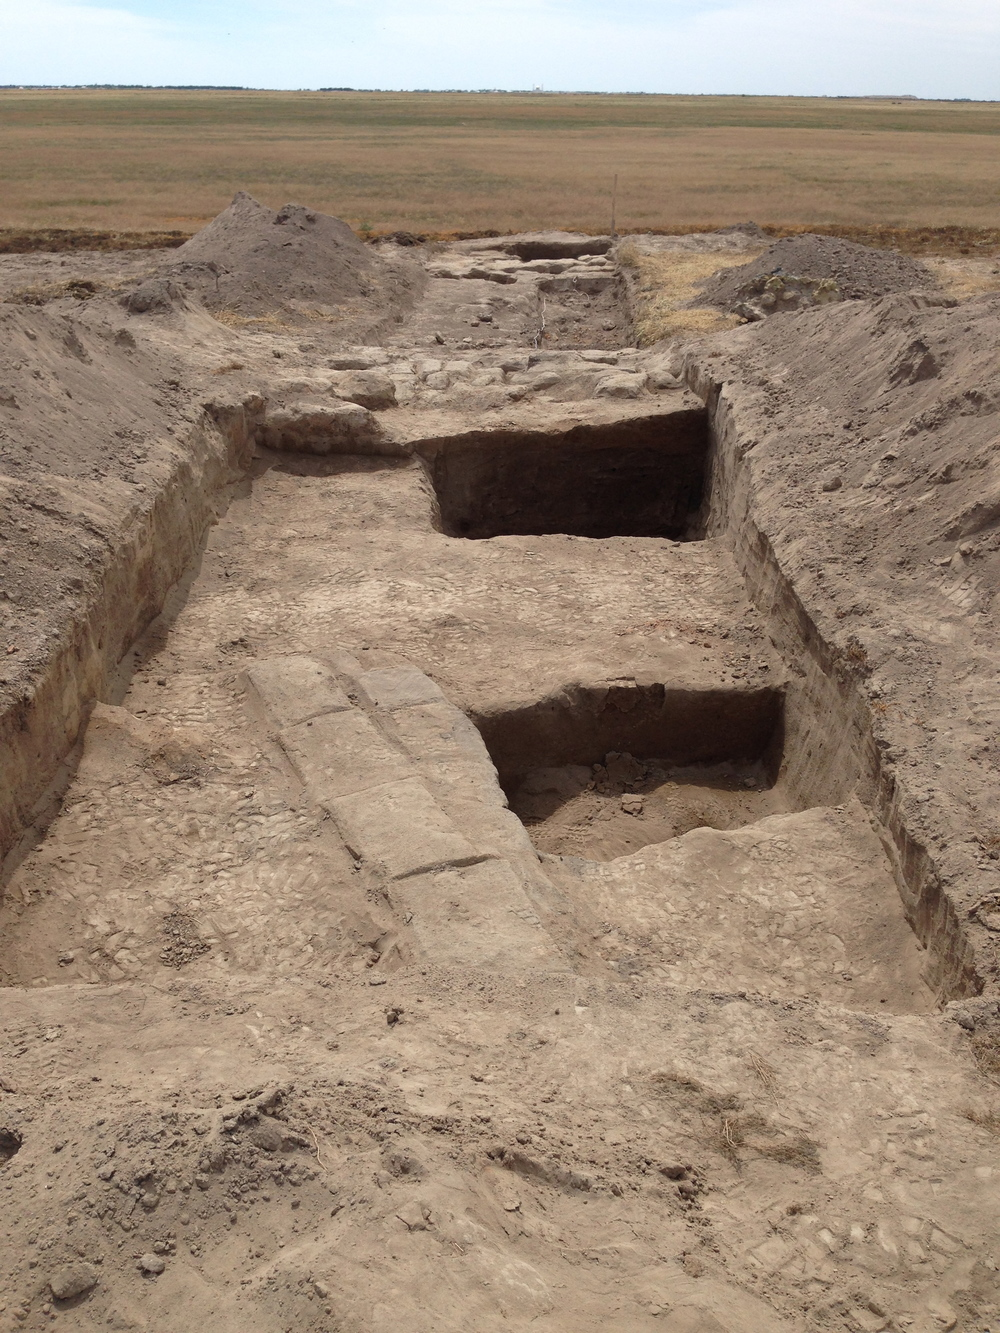 Trench One,showing the inner mud-brick walls, and deeper cuts to investigate the layers of soil.